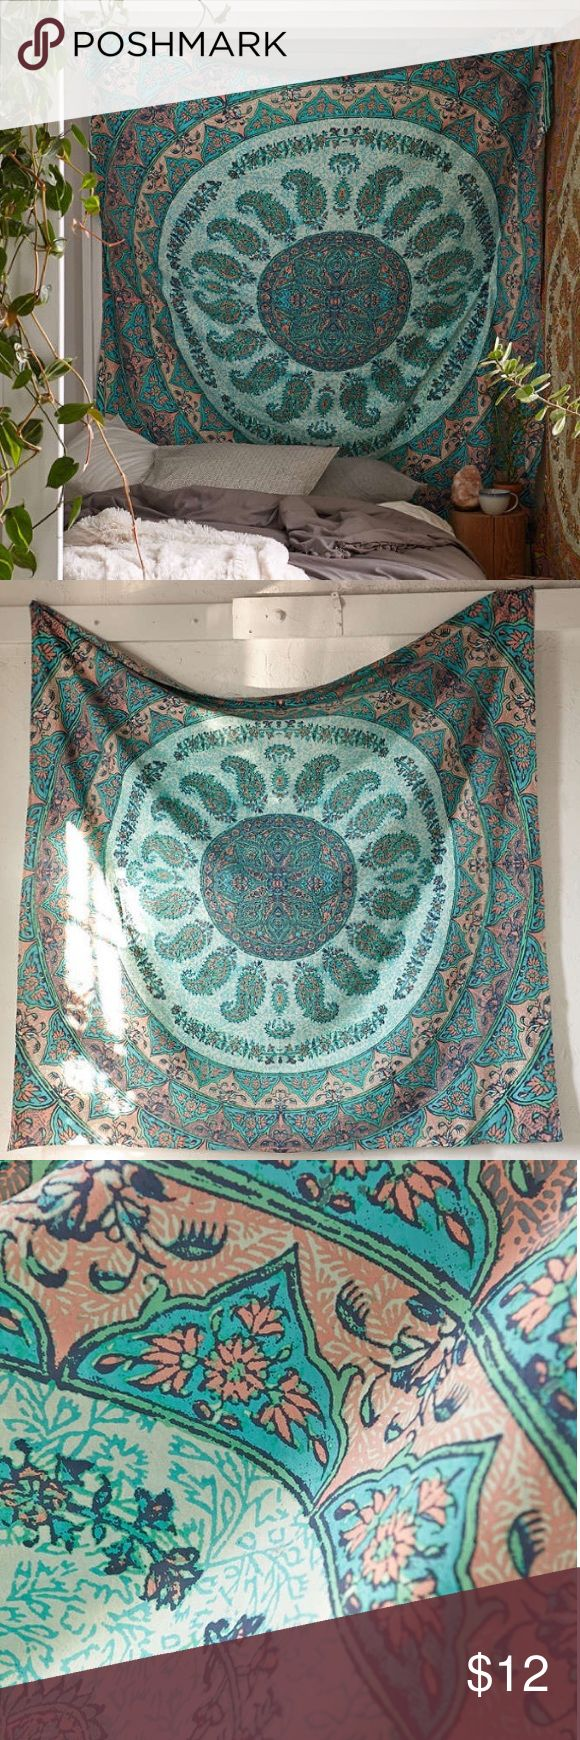 Urban Outfitters Tapestry A square teal and coral tapestry made of cotton. Urban Outfitters Other